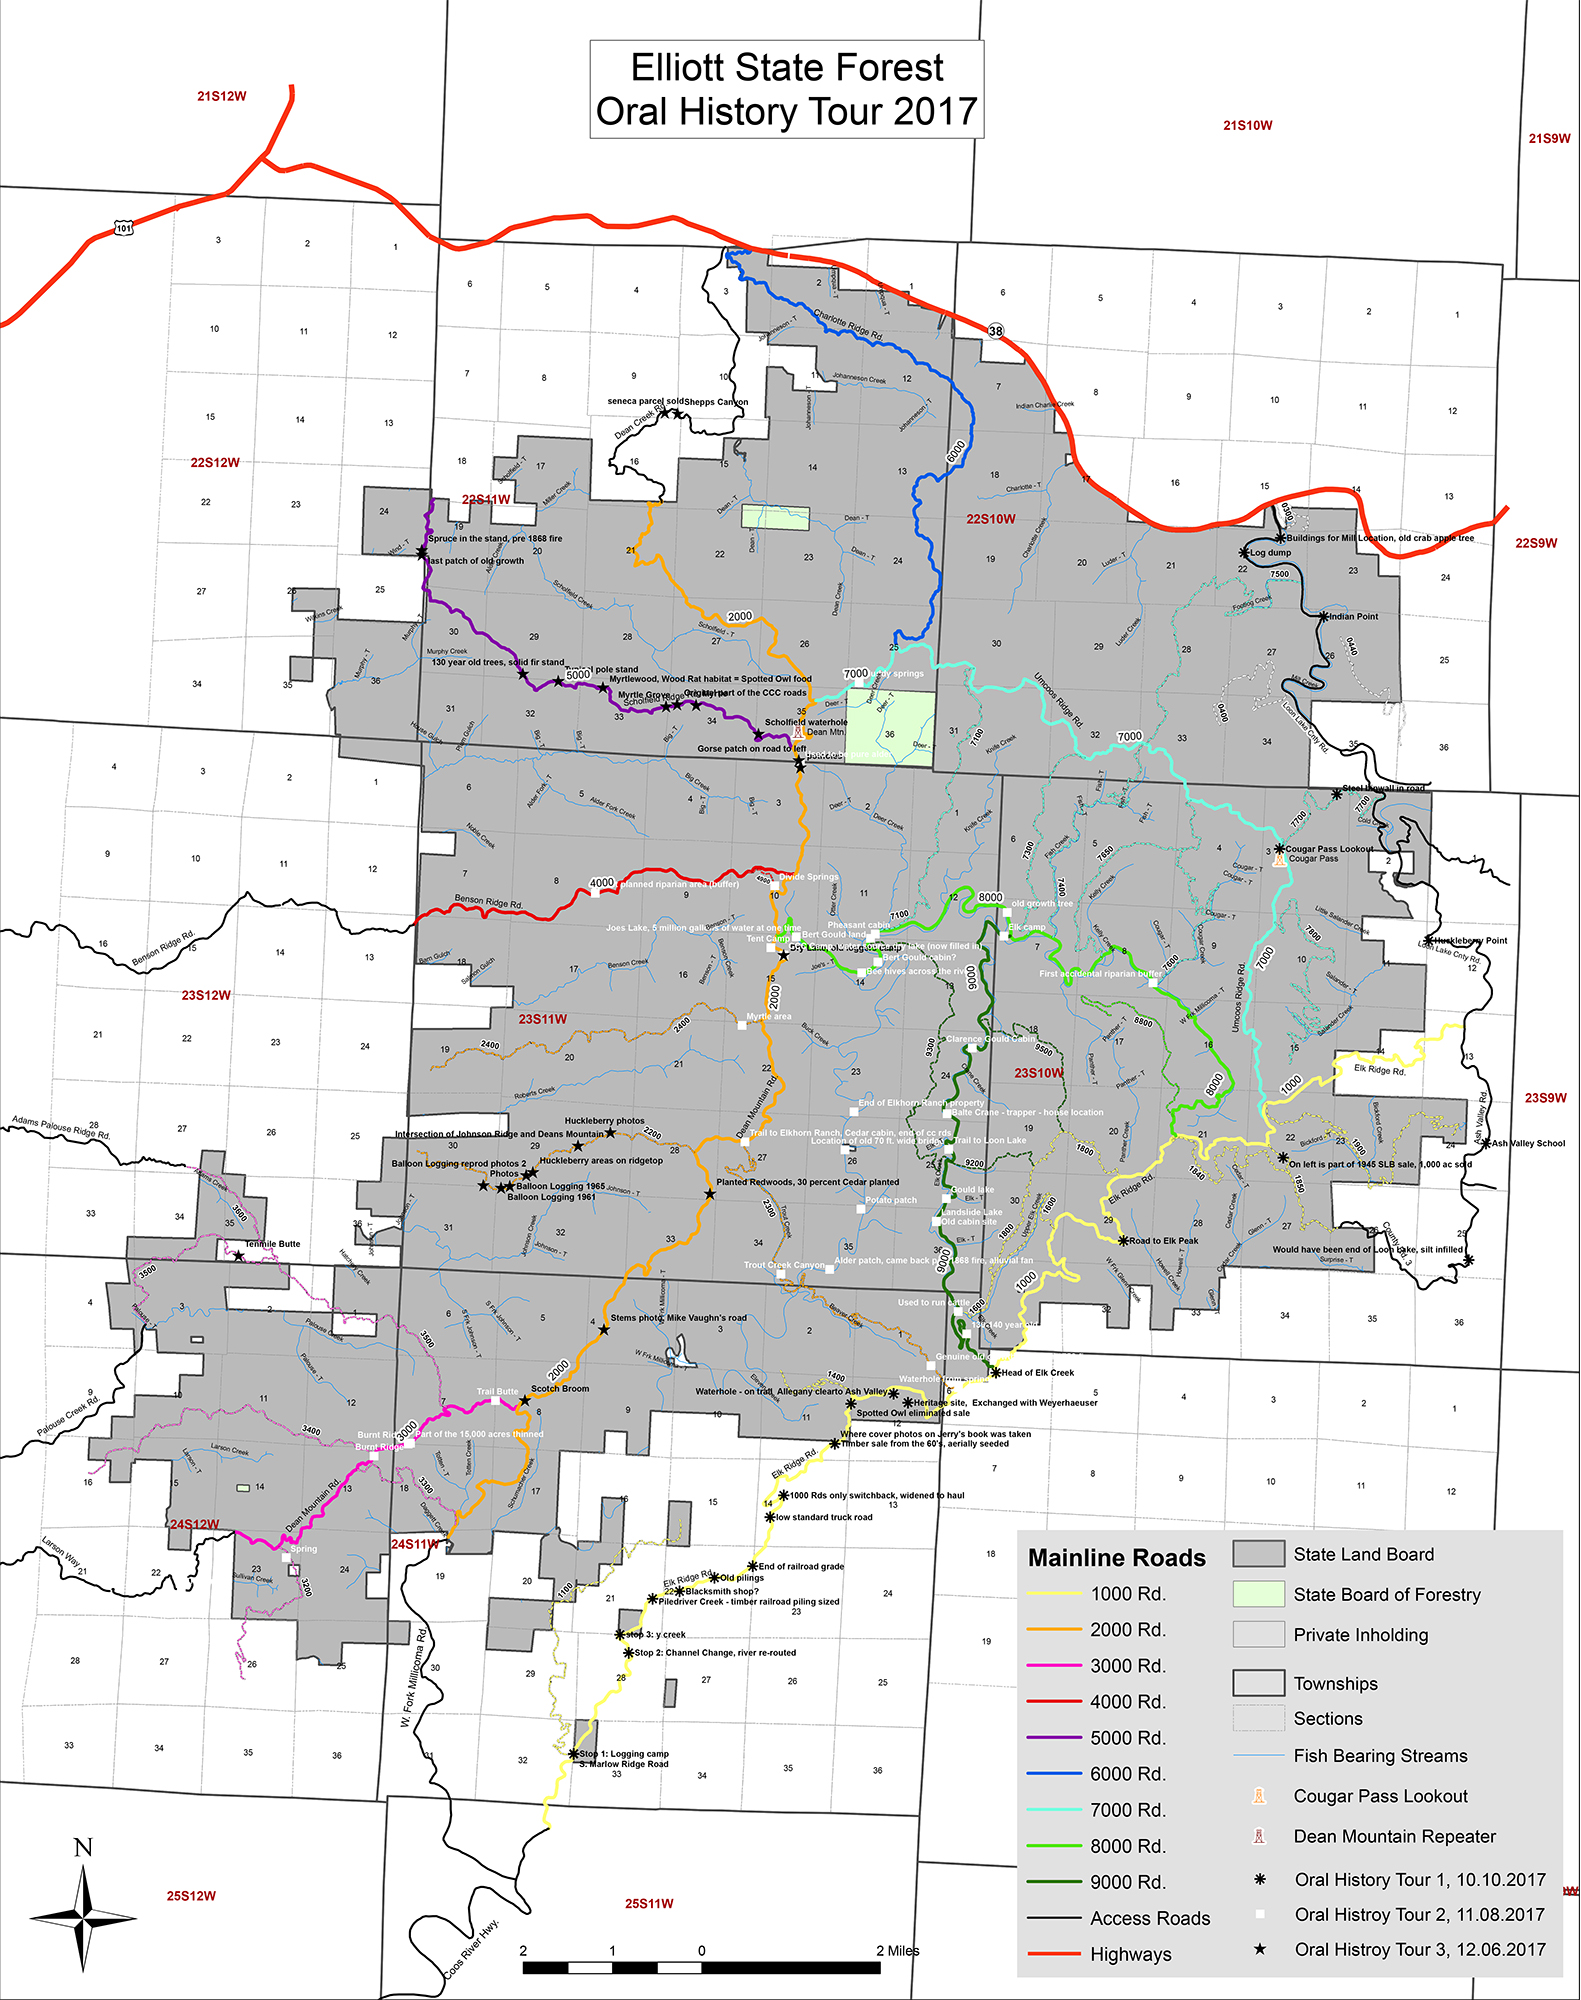 ORWW Elliott State Forest Maps